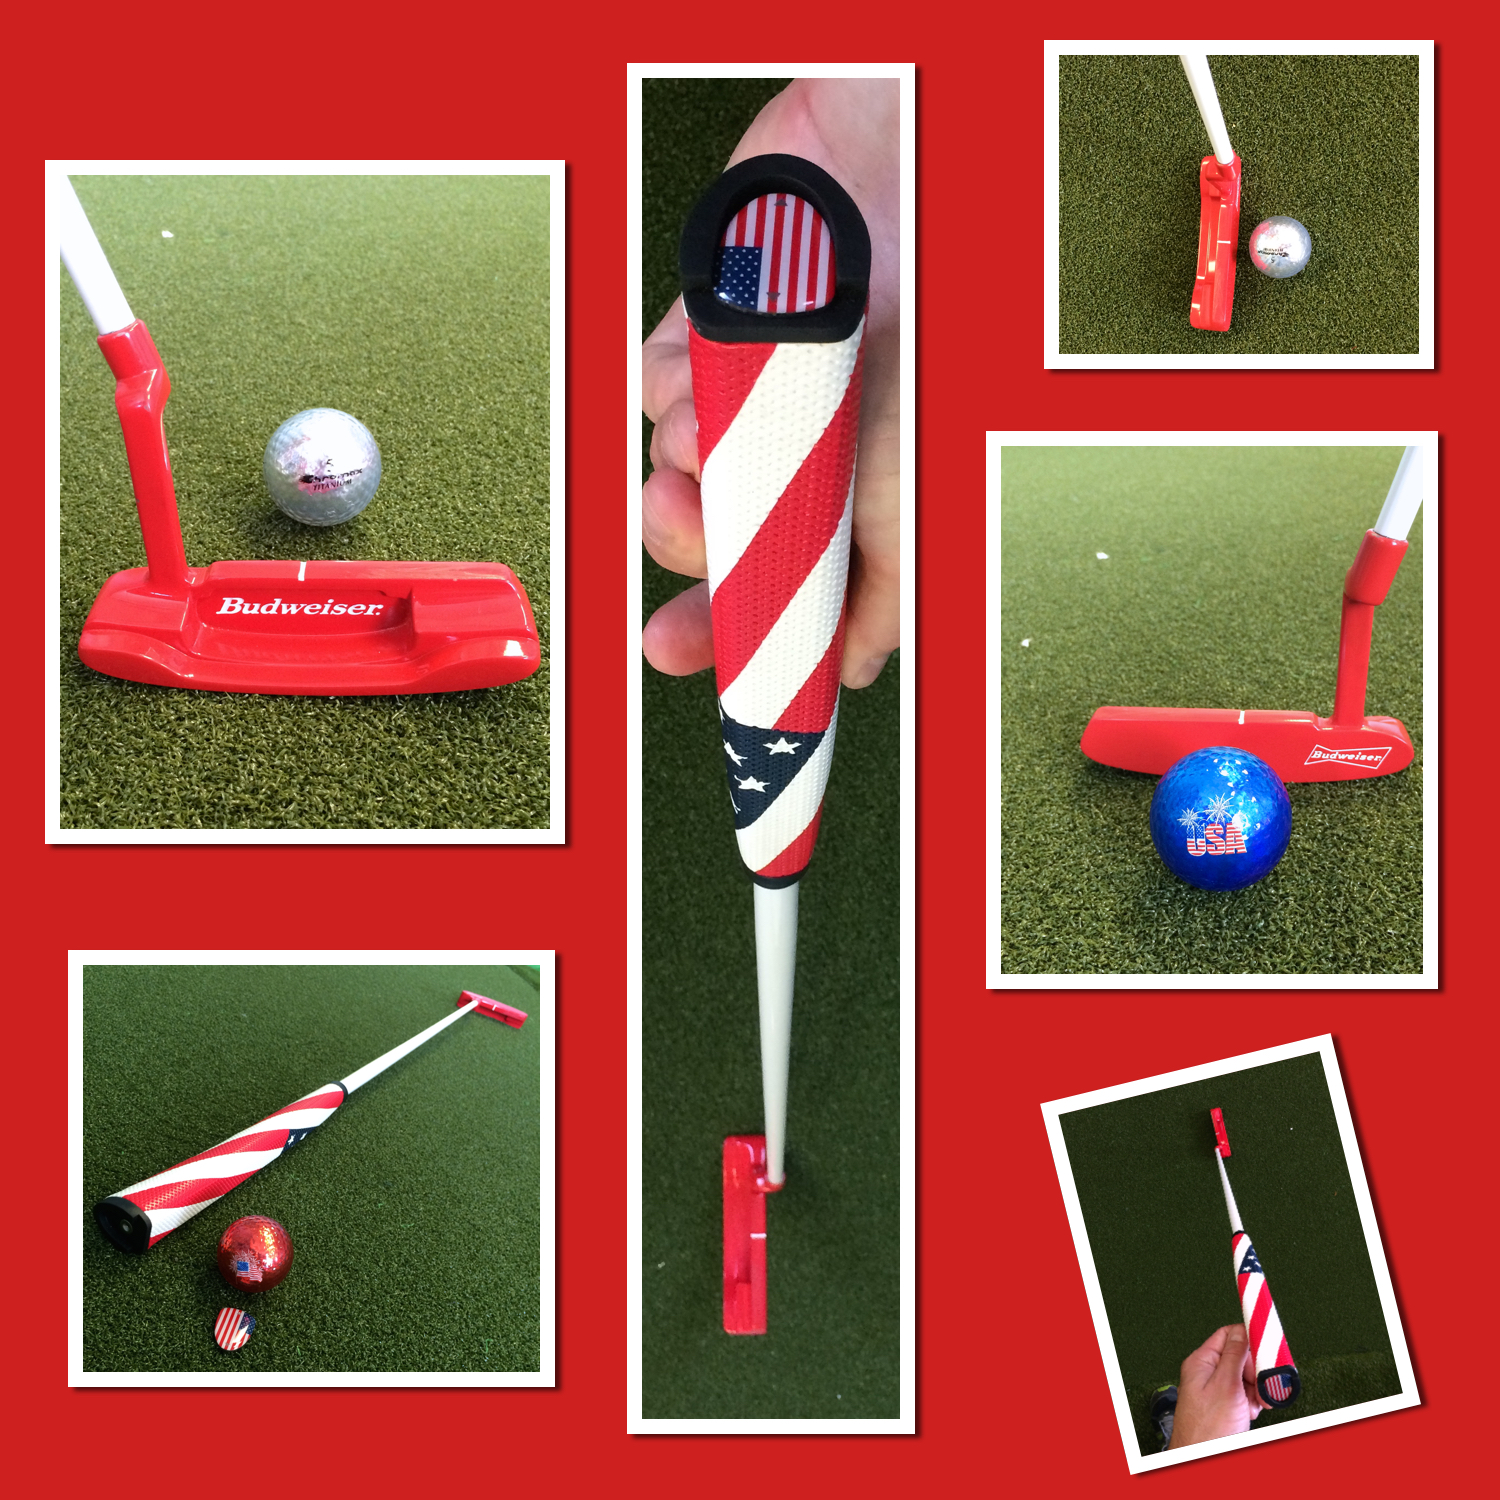 Budweiser Custom Putter